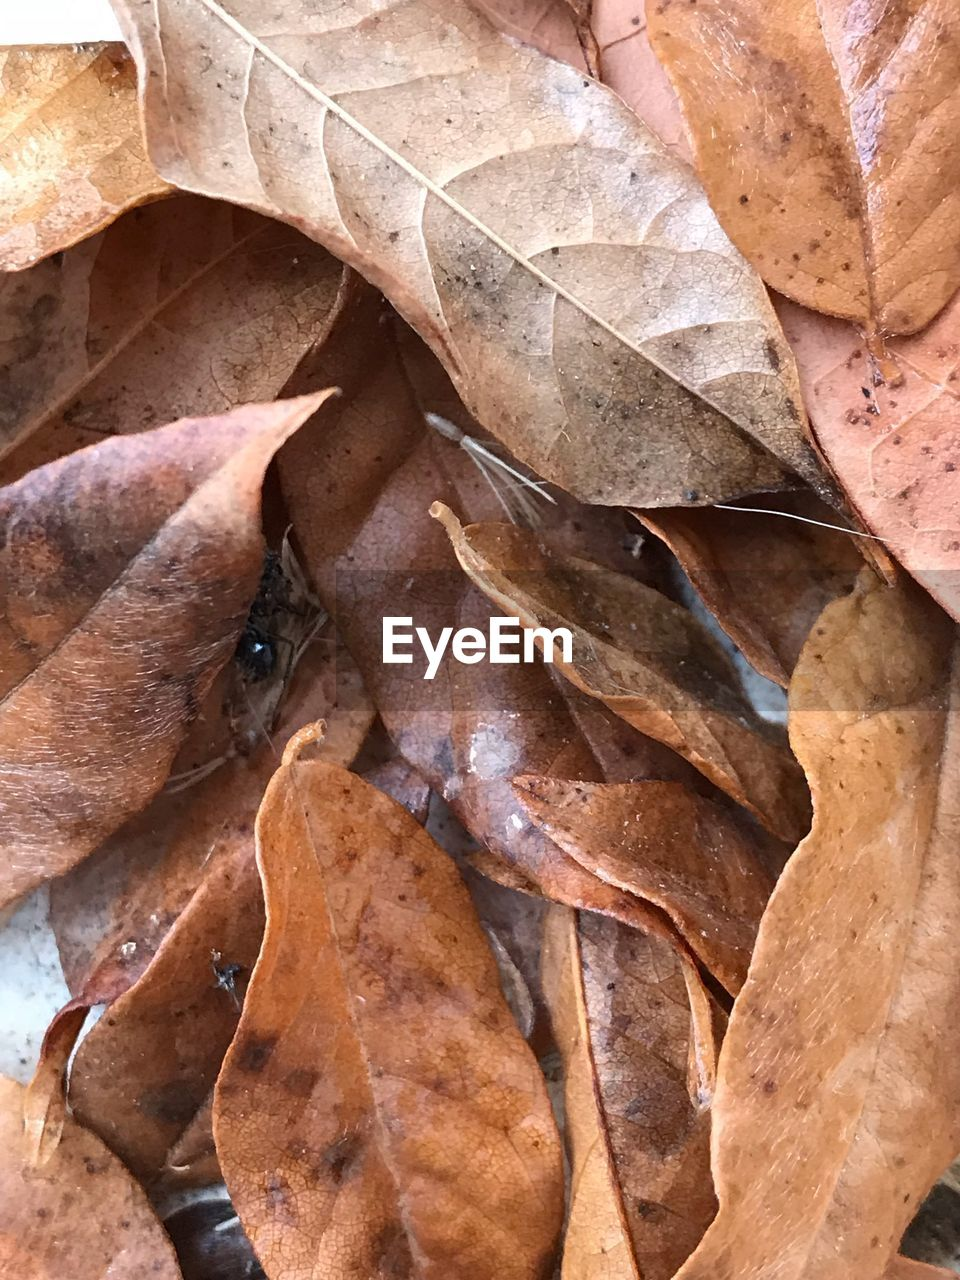 plant part, leaf, autumn, close-up, full frame, dry, backgrounds, no people, nature, vulnerability, fragility, leaves, leaf vein, change, brown, beauty in nature, plant, day, outdoors, natural pattern, natural condition, maple leaf, dried